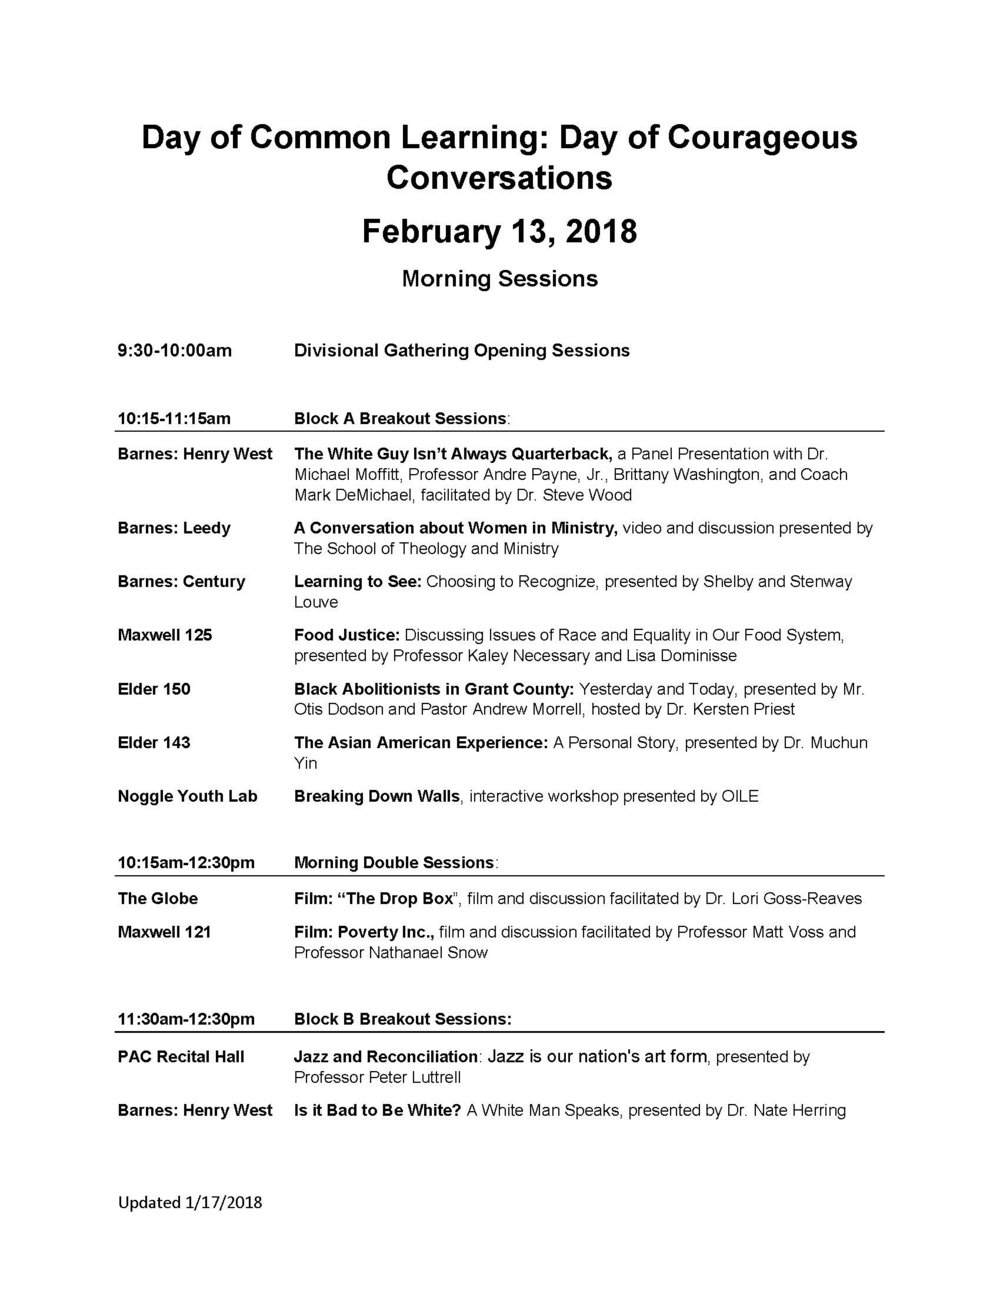 2018 Day of Courageous Conversations Schedule_Page_1.jpg